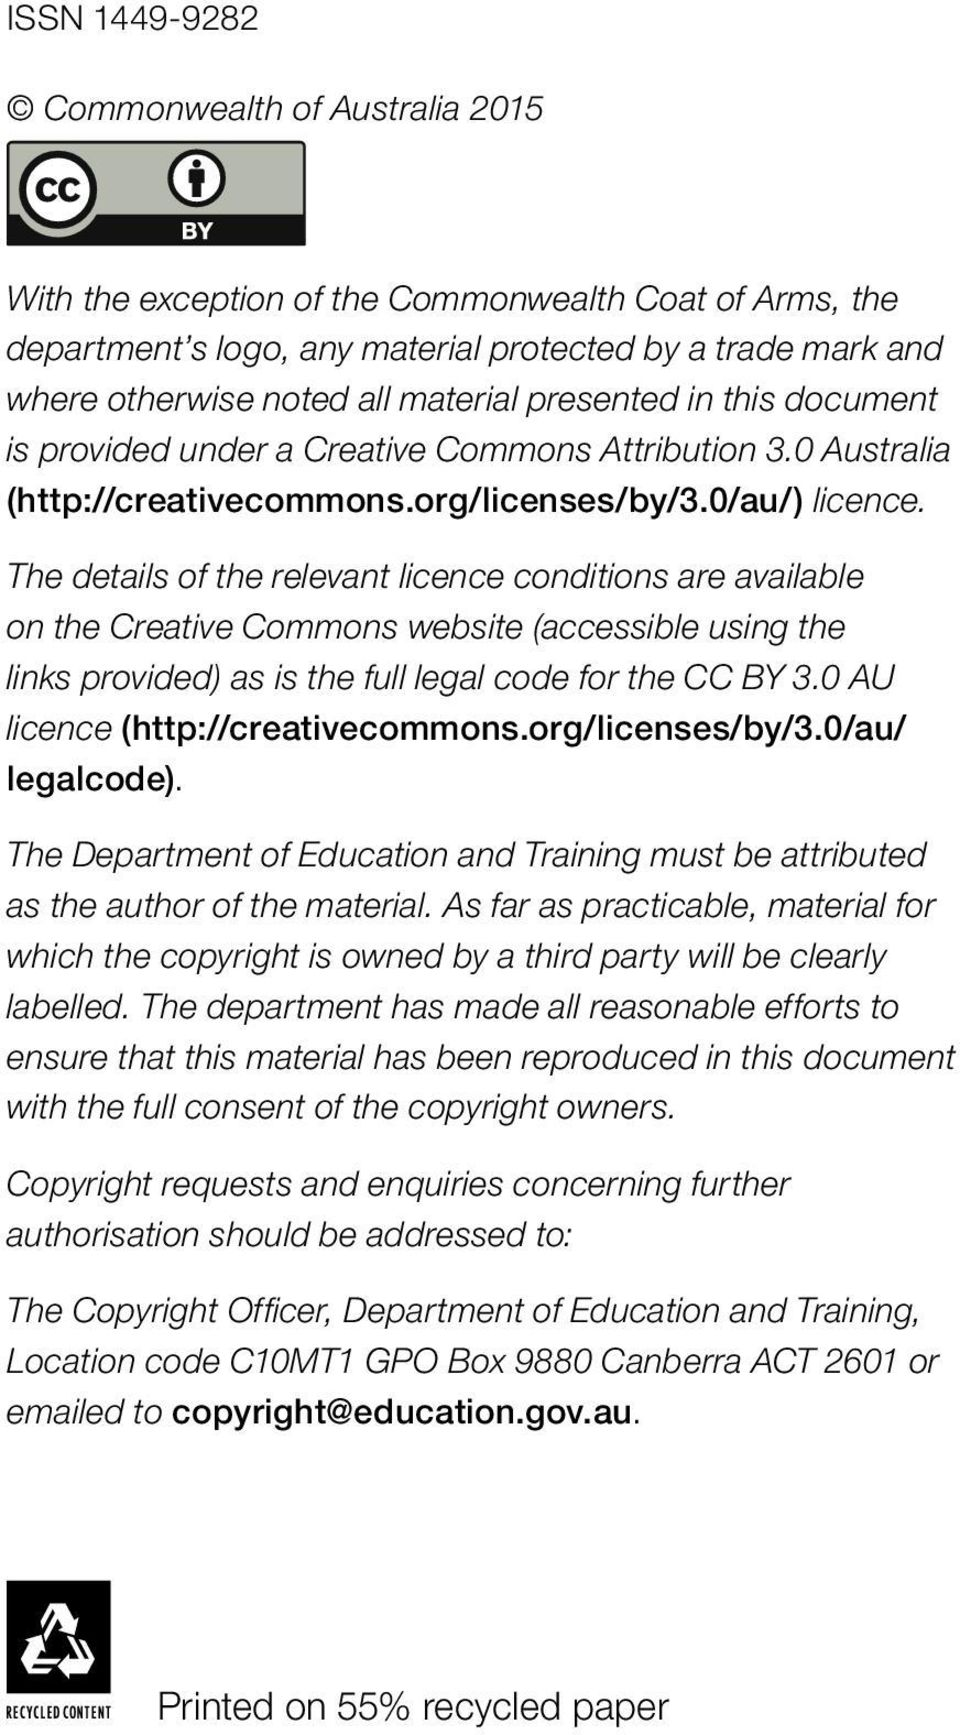 The details of the relevant licence conditions are available on the Creative Commons website (accessible using the links provided) as is the full legal code for the CC BY 3.